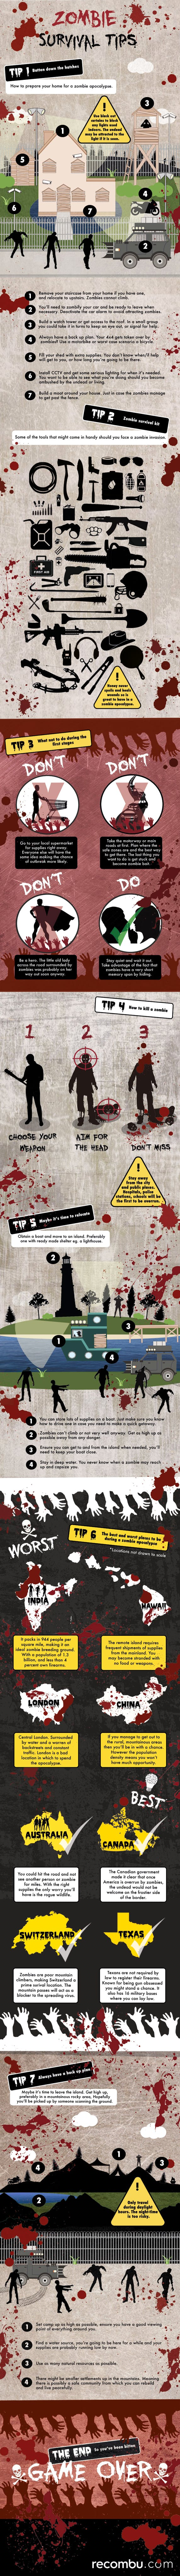 Zombie survival tips